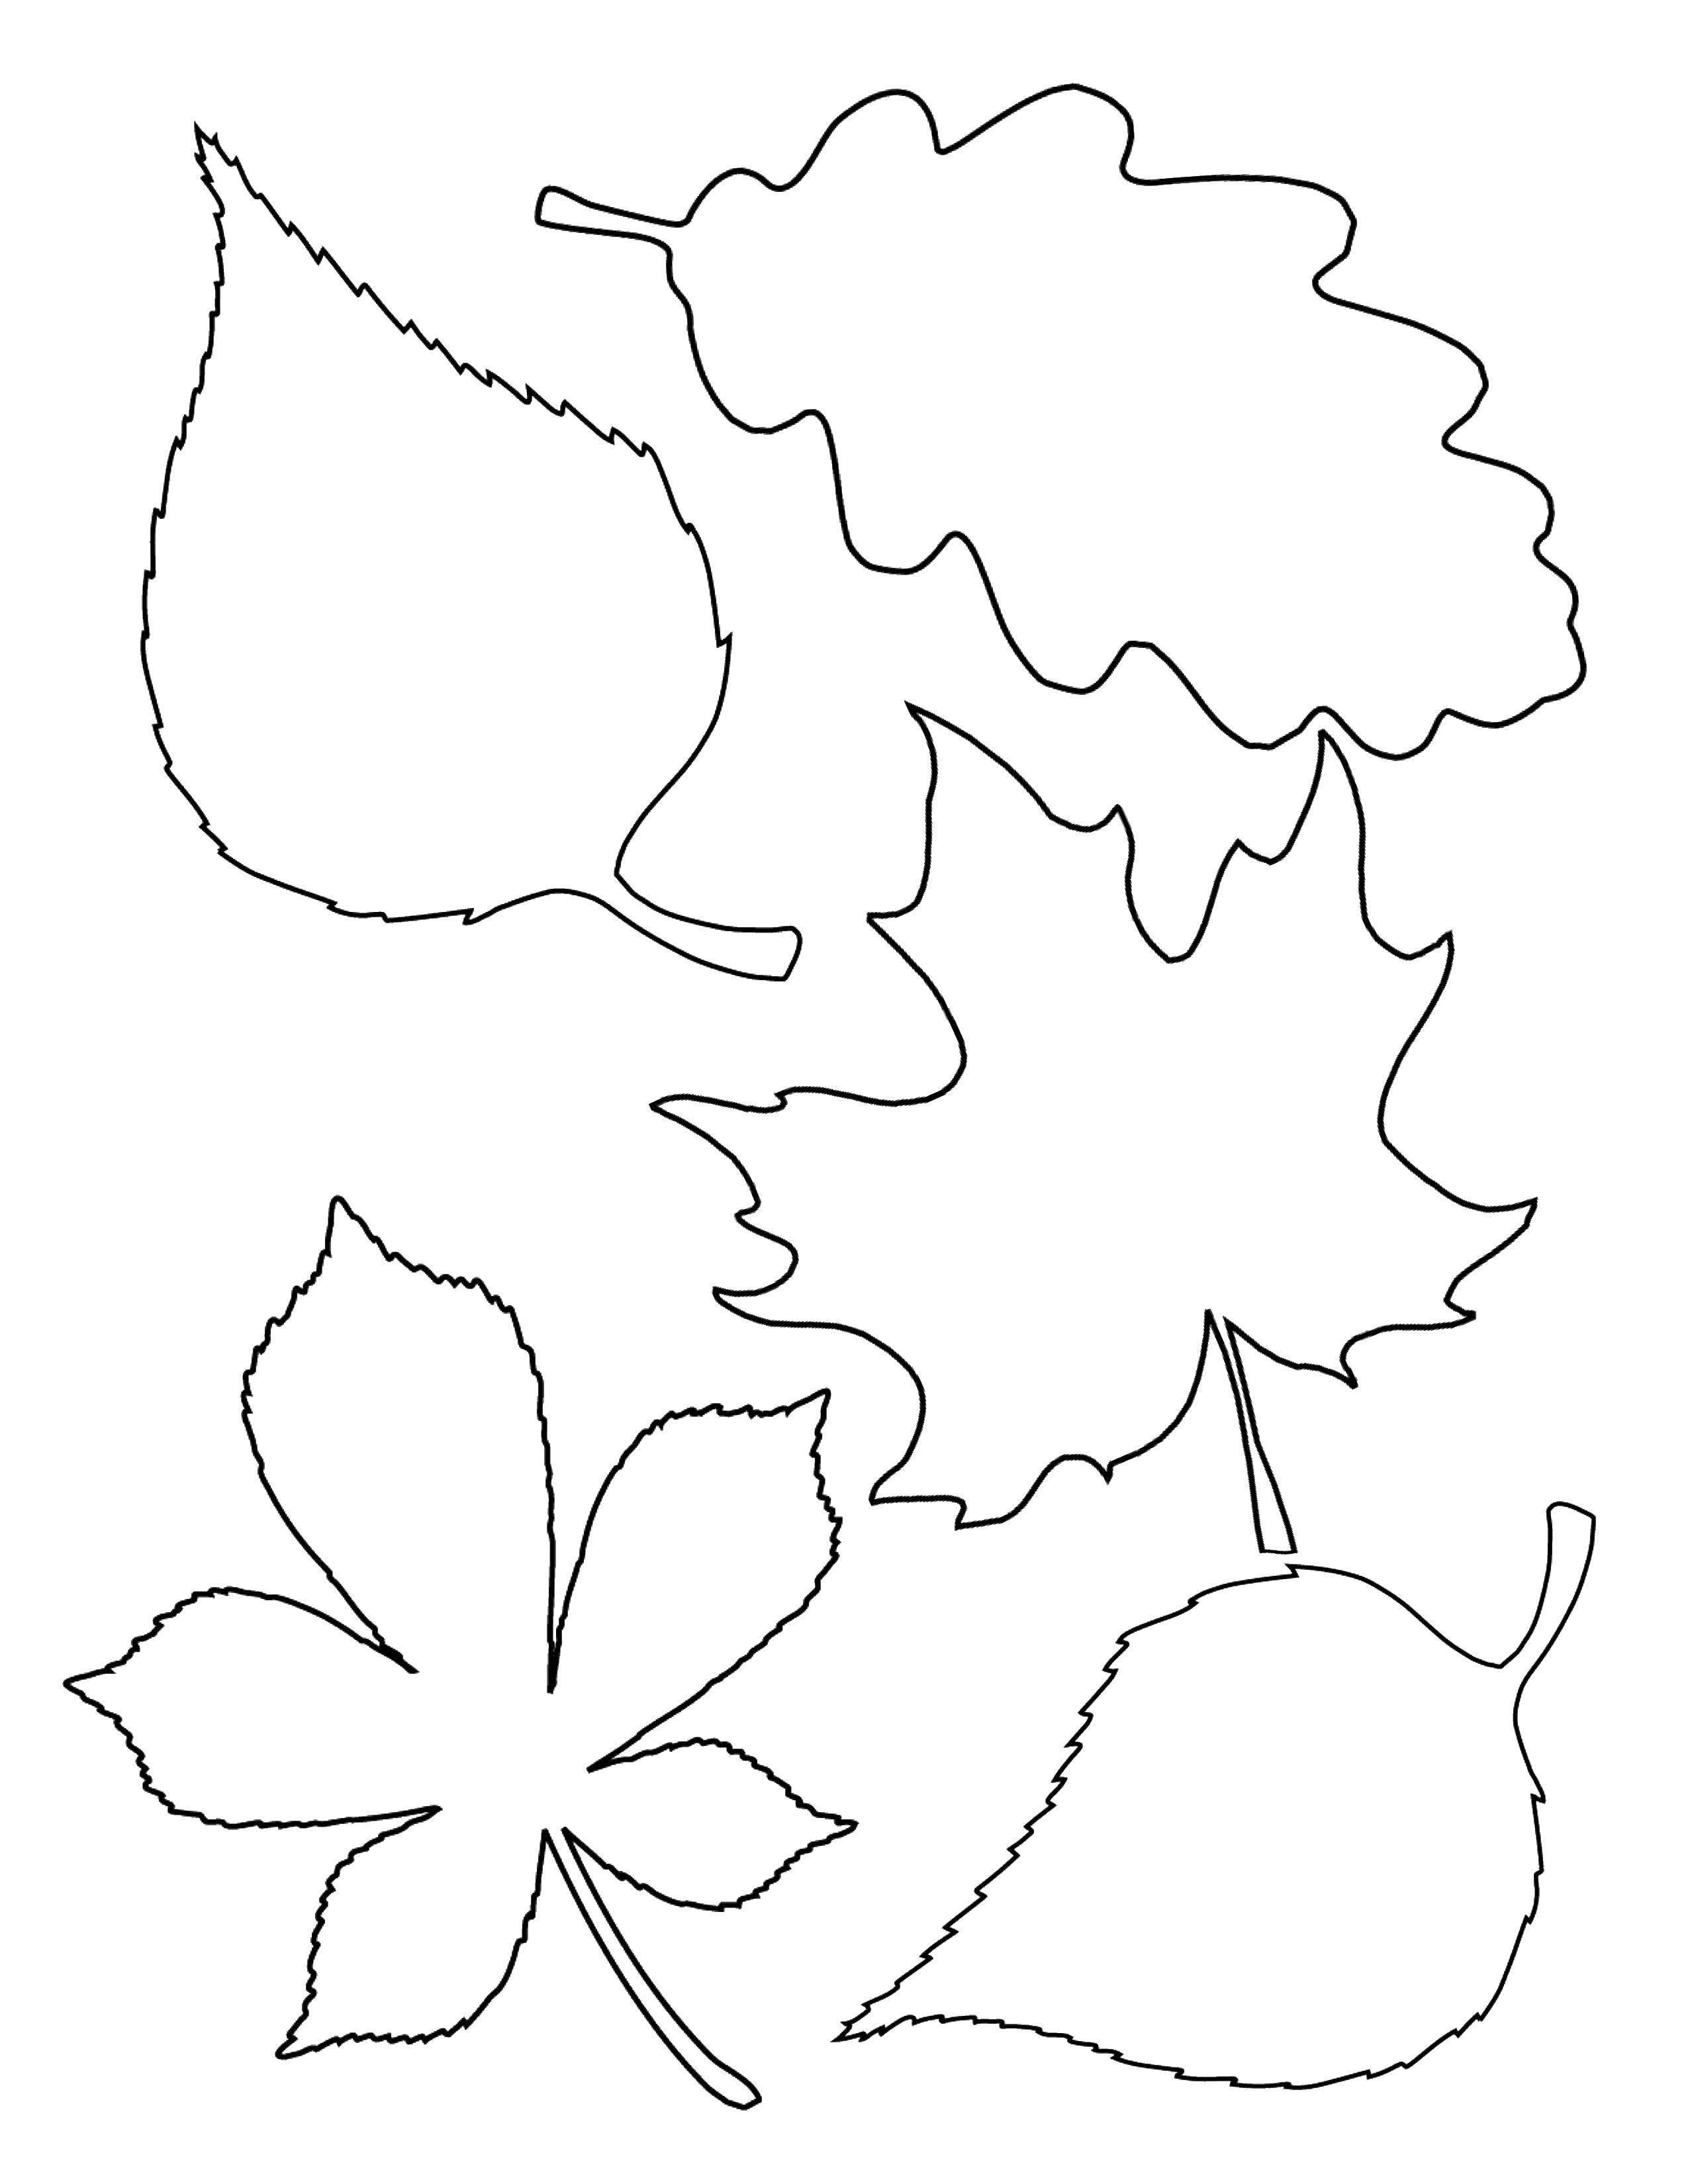 Coloring Leaves Download leaves.  Print ,The contours of the leaves of the trees,